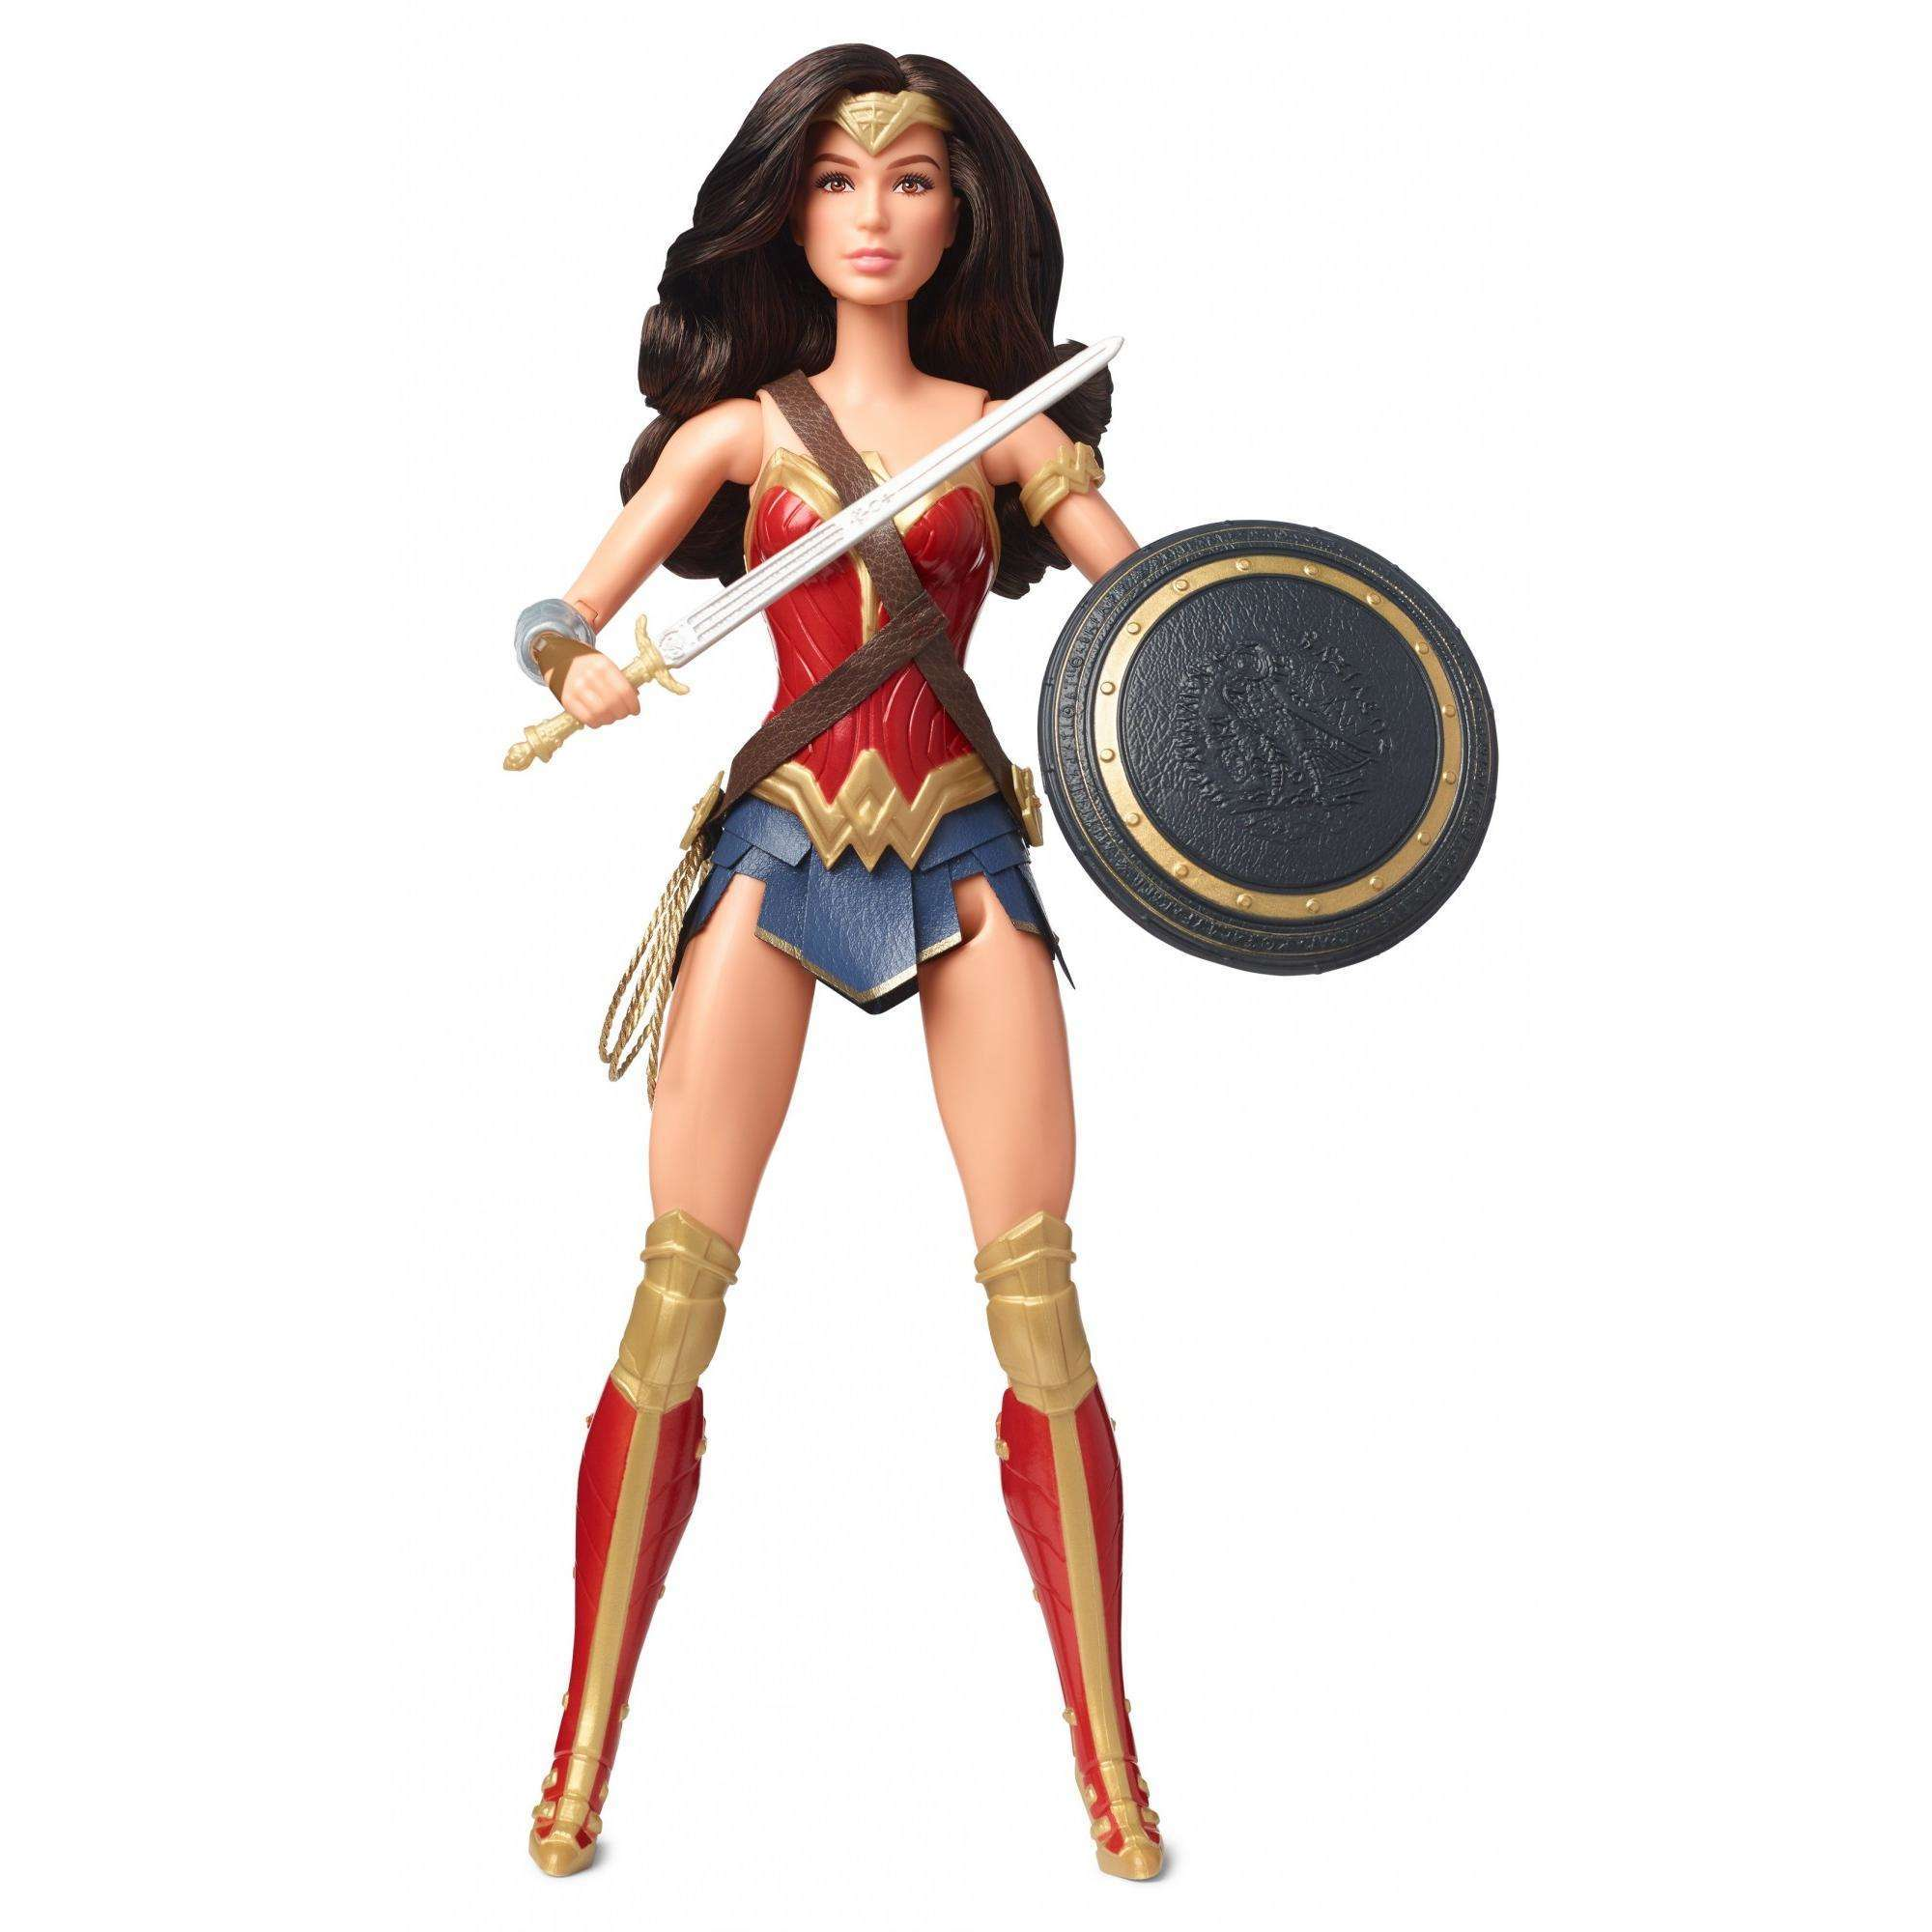 Barbie Justice League Wonder Woman Doll by Mattel